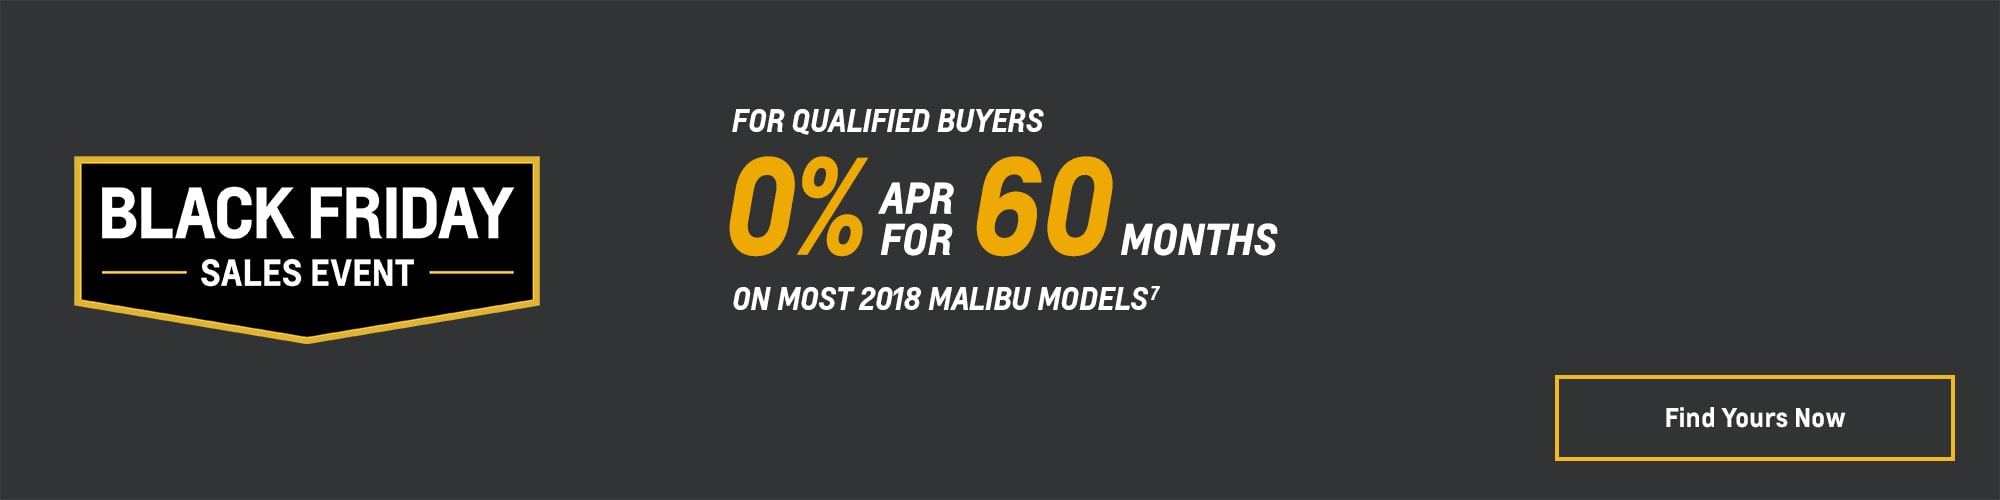 Black Friday Chevy Deals and Offers: 2018 Malibu 0% APR